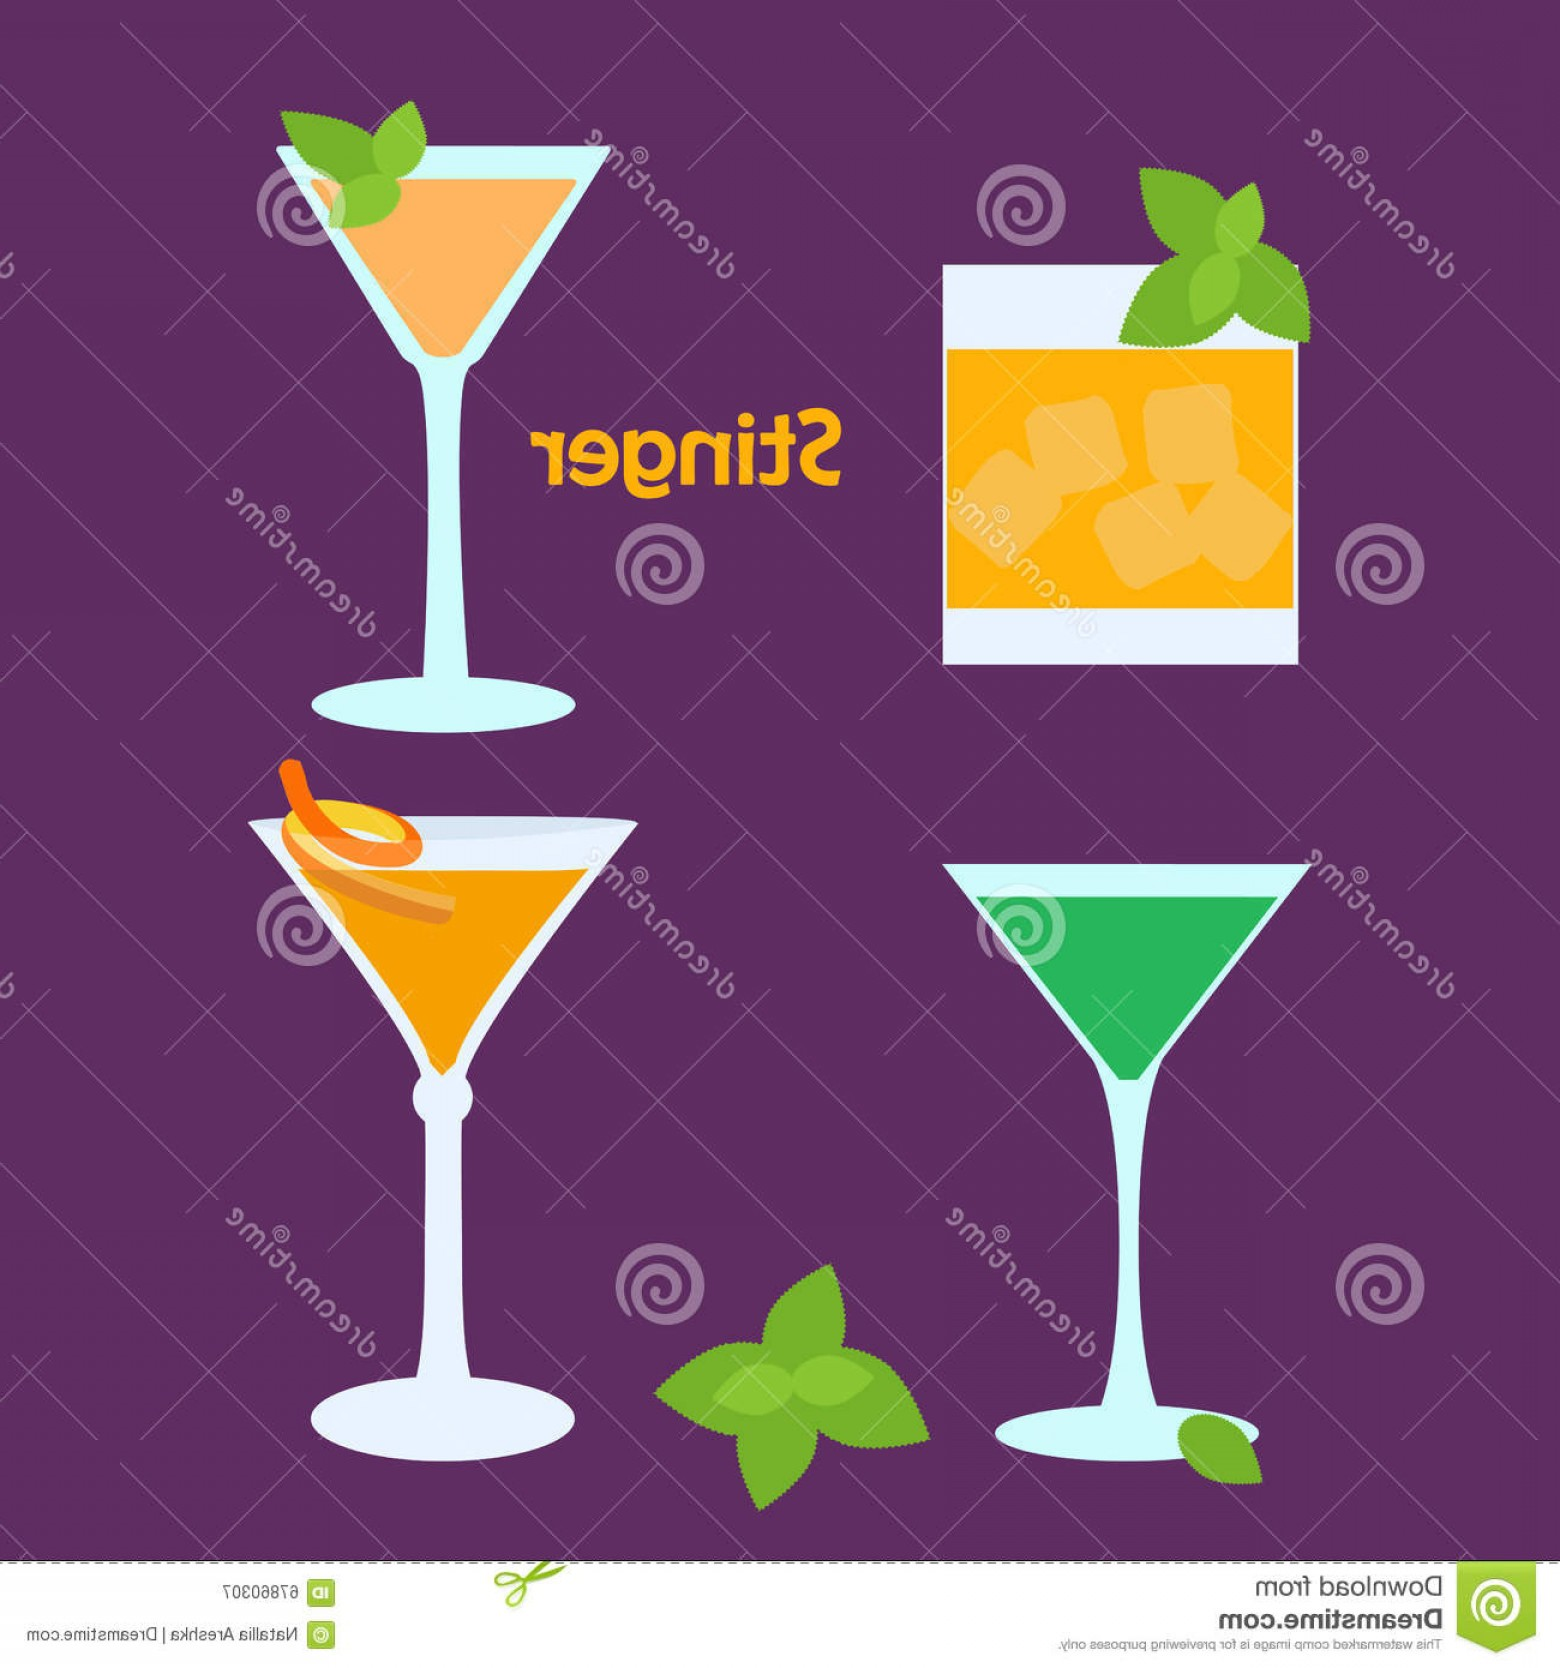 Cocktail Glasses Vector Art Decor: Stock Illustration Stinger Alcohol Cocktail Different Glasses Vector Illustration Bar Menu Restaurant Decoration Party Poster Image